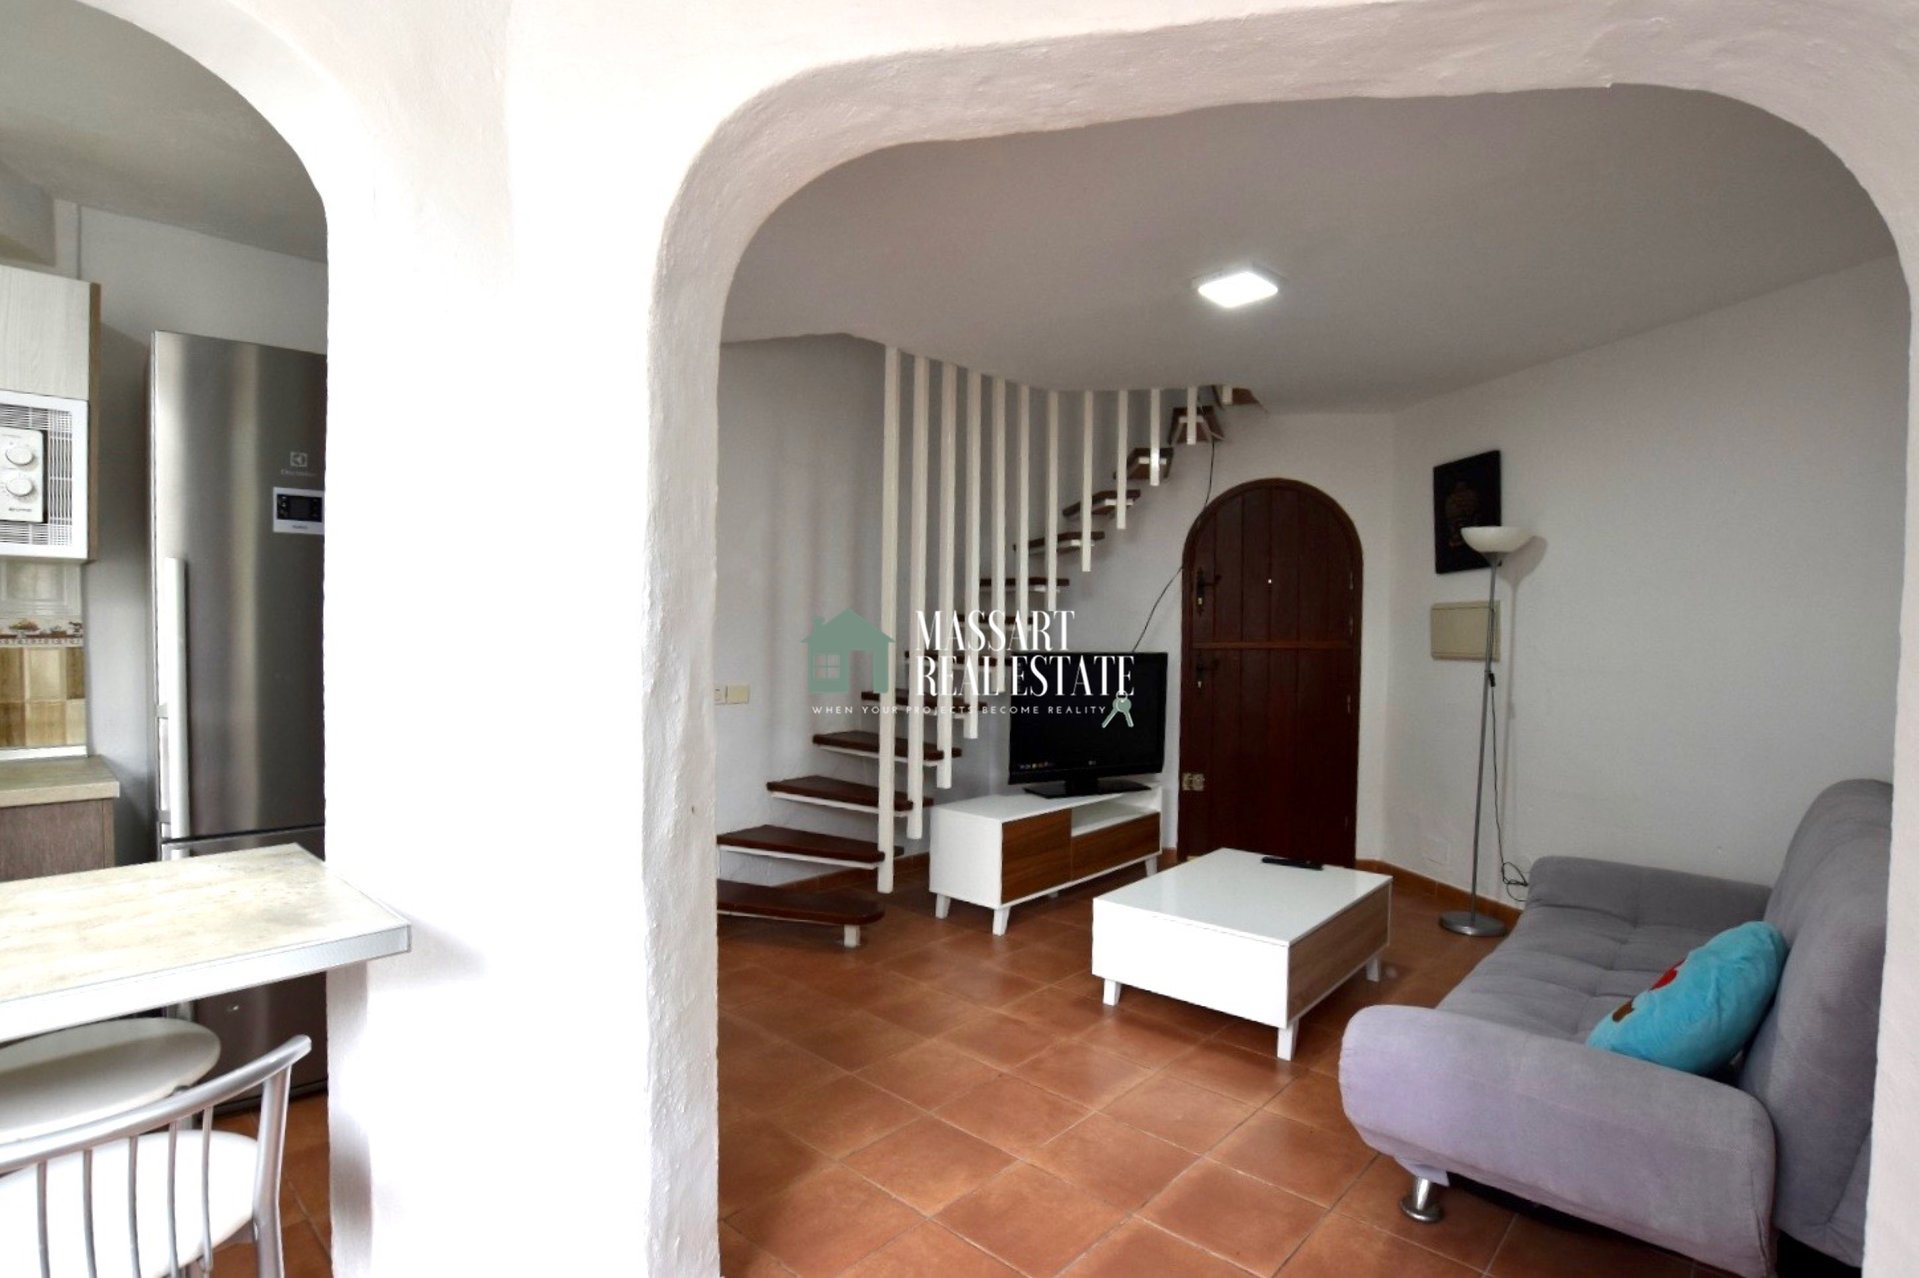 For sale in Playa de las Américas, in the Las Tortugas residential complex, a 65 m2 triplex recently renovated and fully furnished.